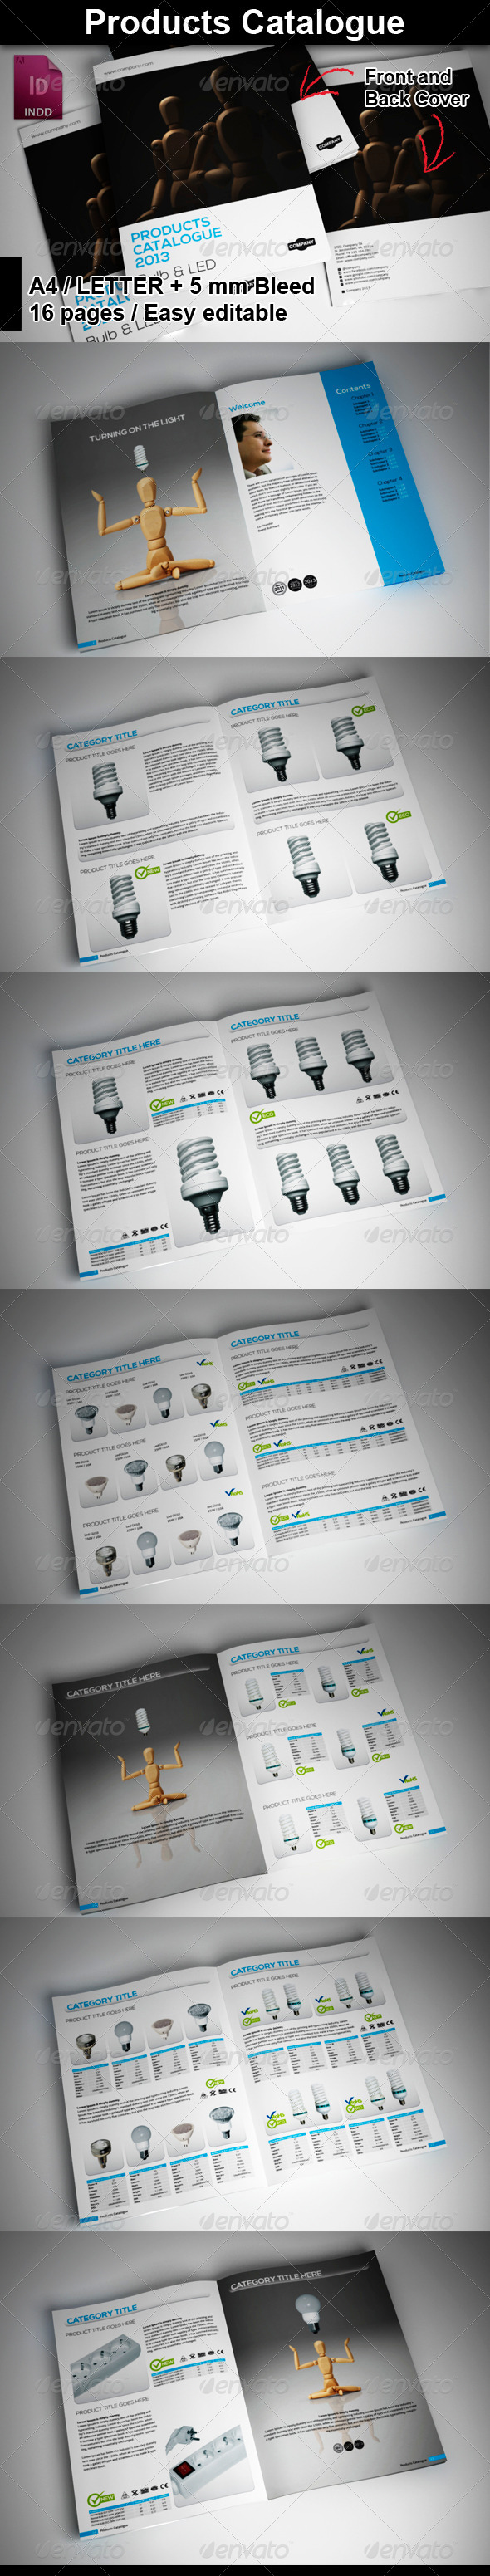 GraphicRiver Products Catalogue 5889914